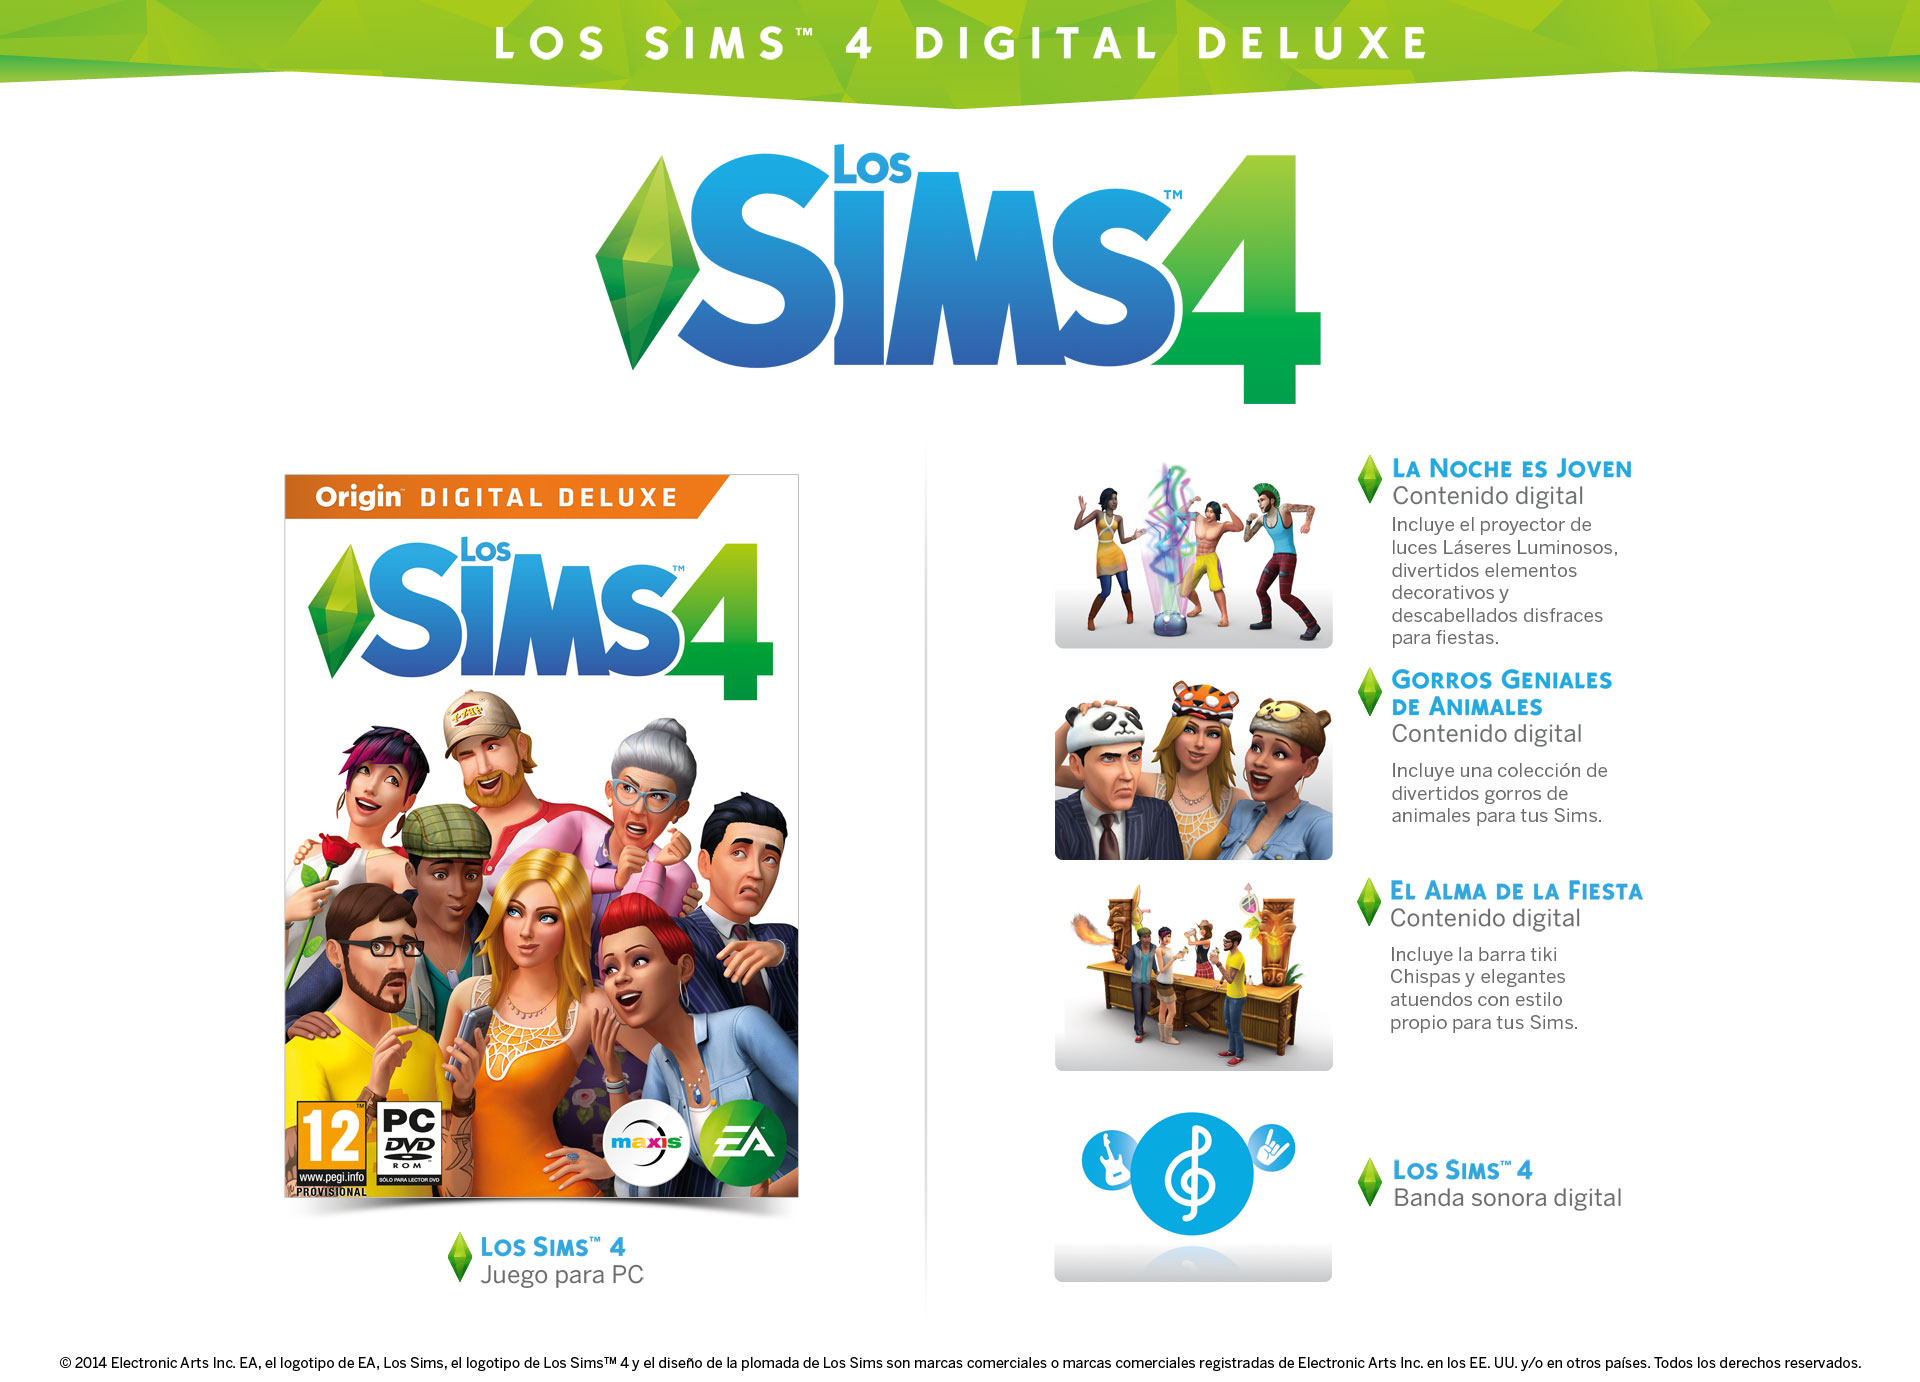 los_sims_4_digital_deluxe_web